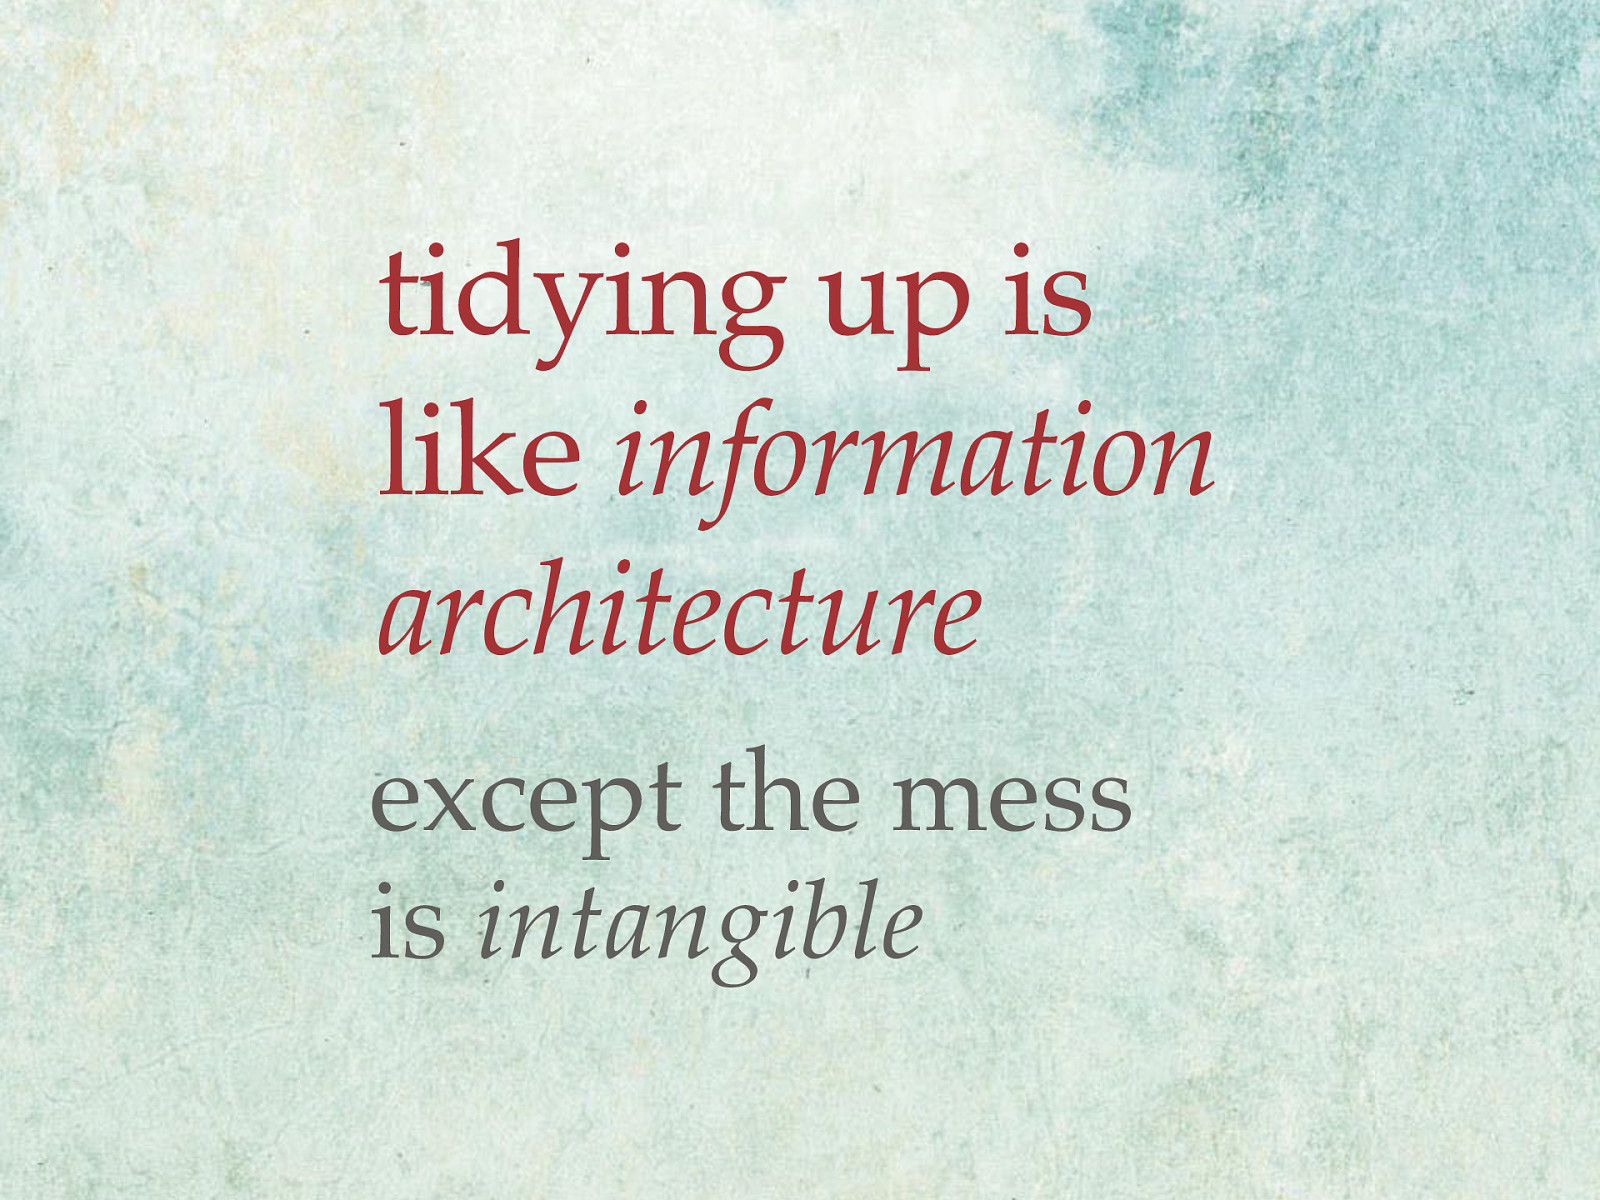 Tidying up is kind of like information architecture, except the mess is intangible.